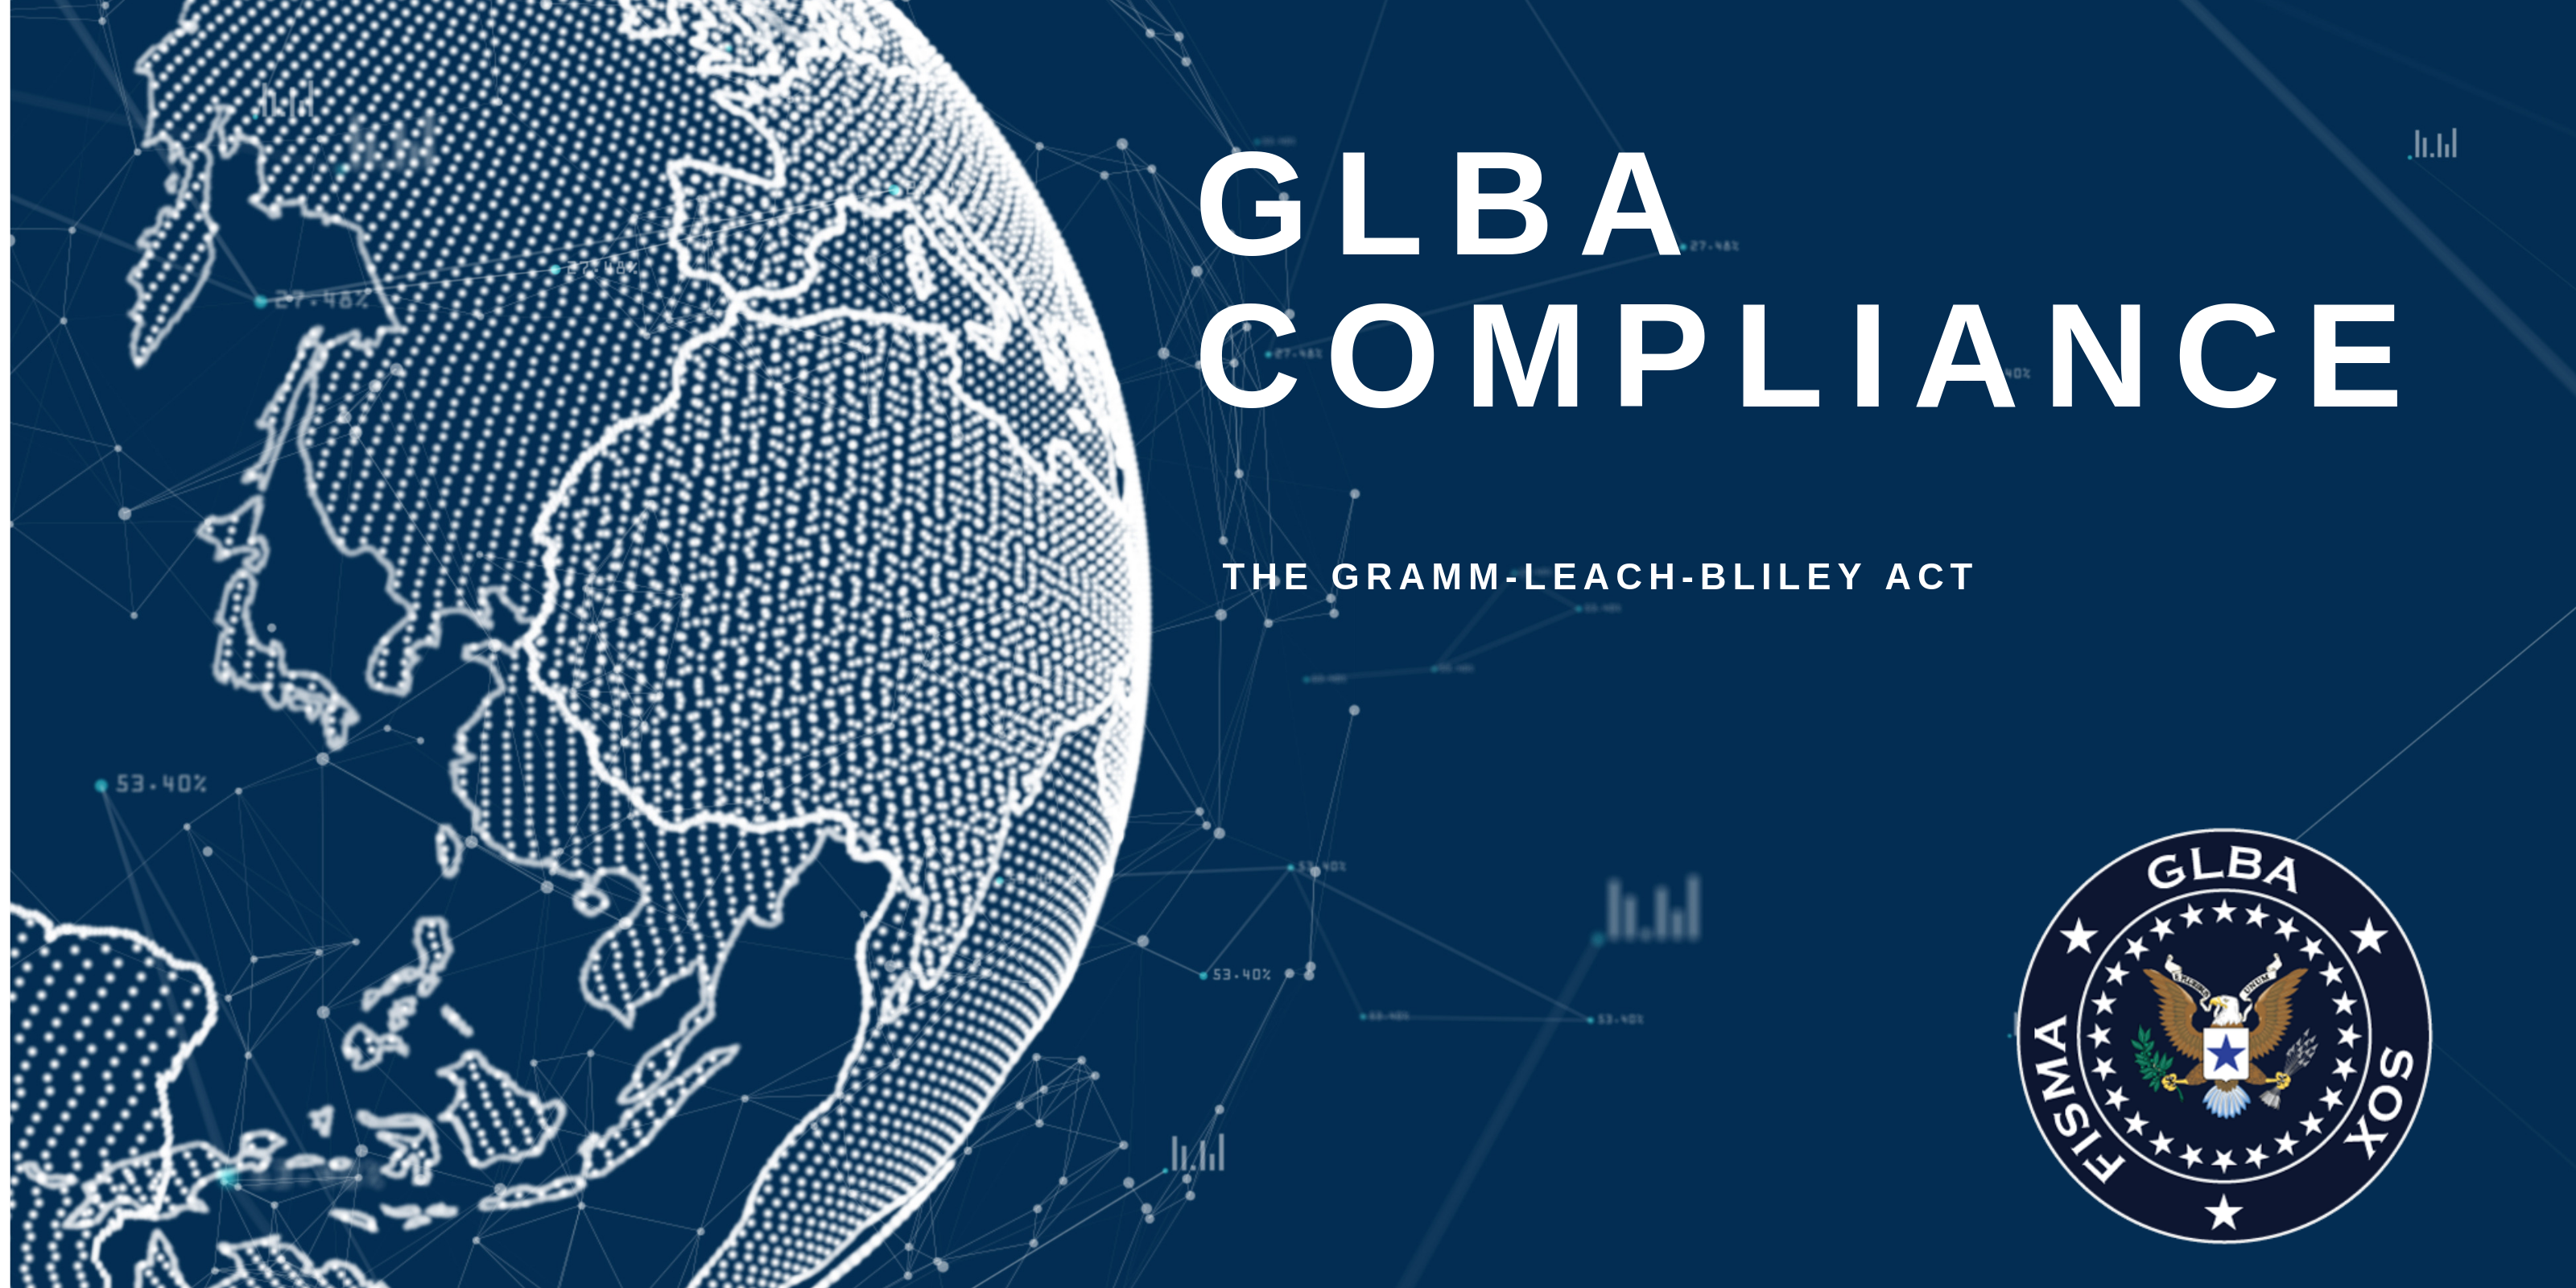 Do I Need Encryption and Multi-factor Authentication for GLBA Compliance?